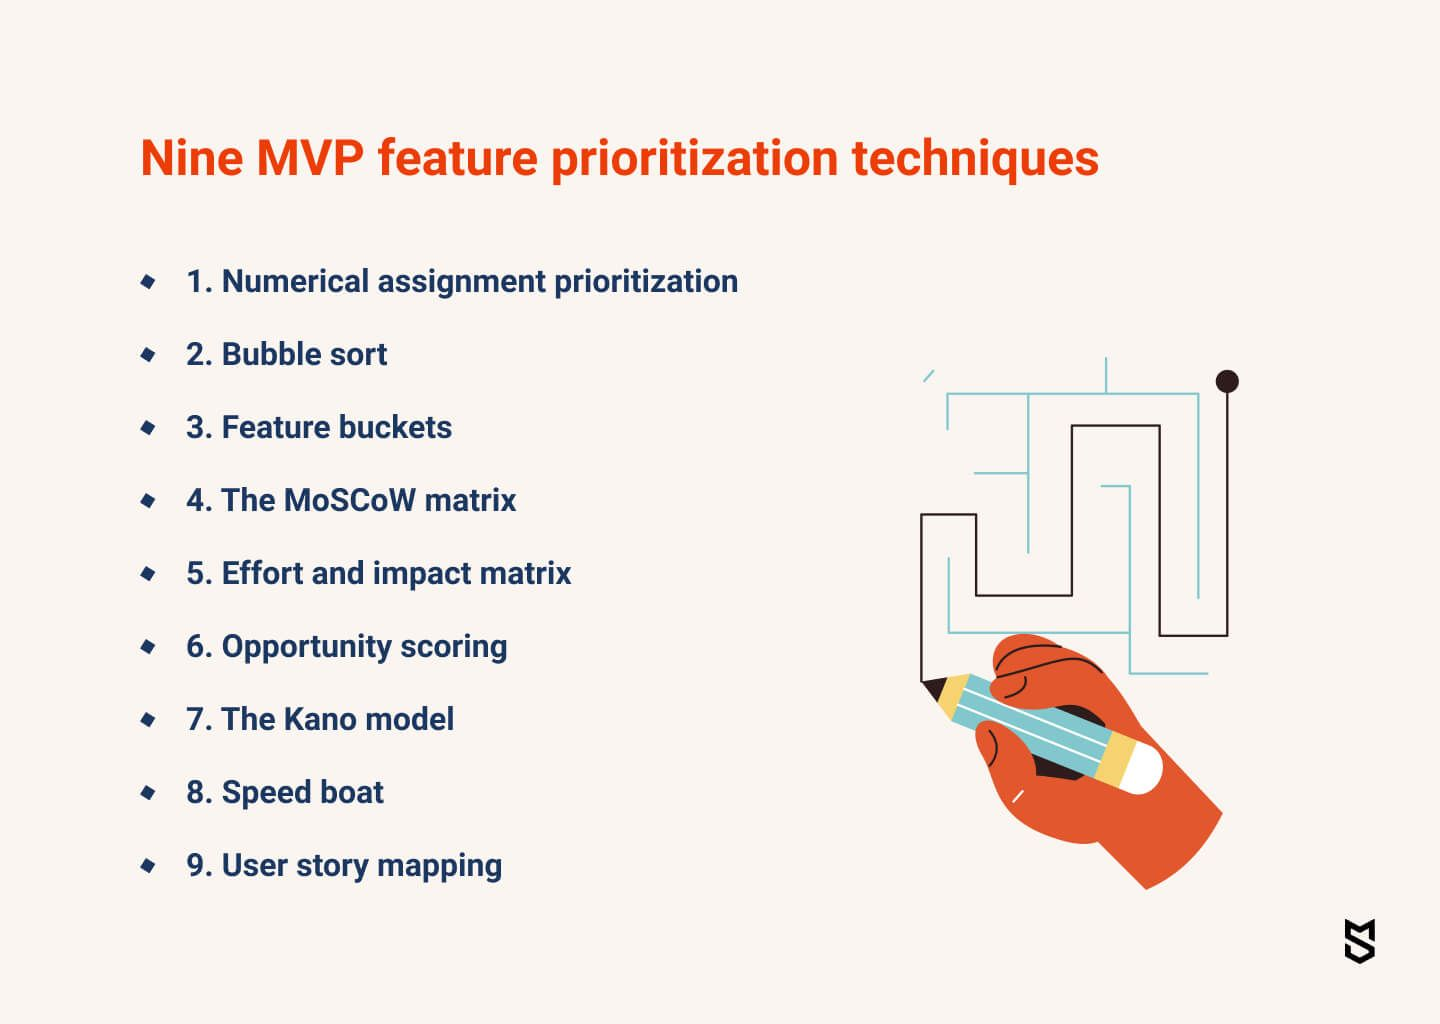 9 MVP feature prioritization techniques